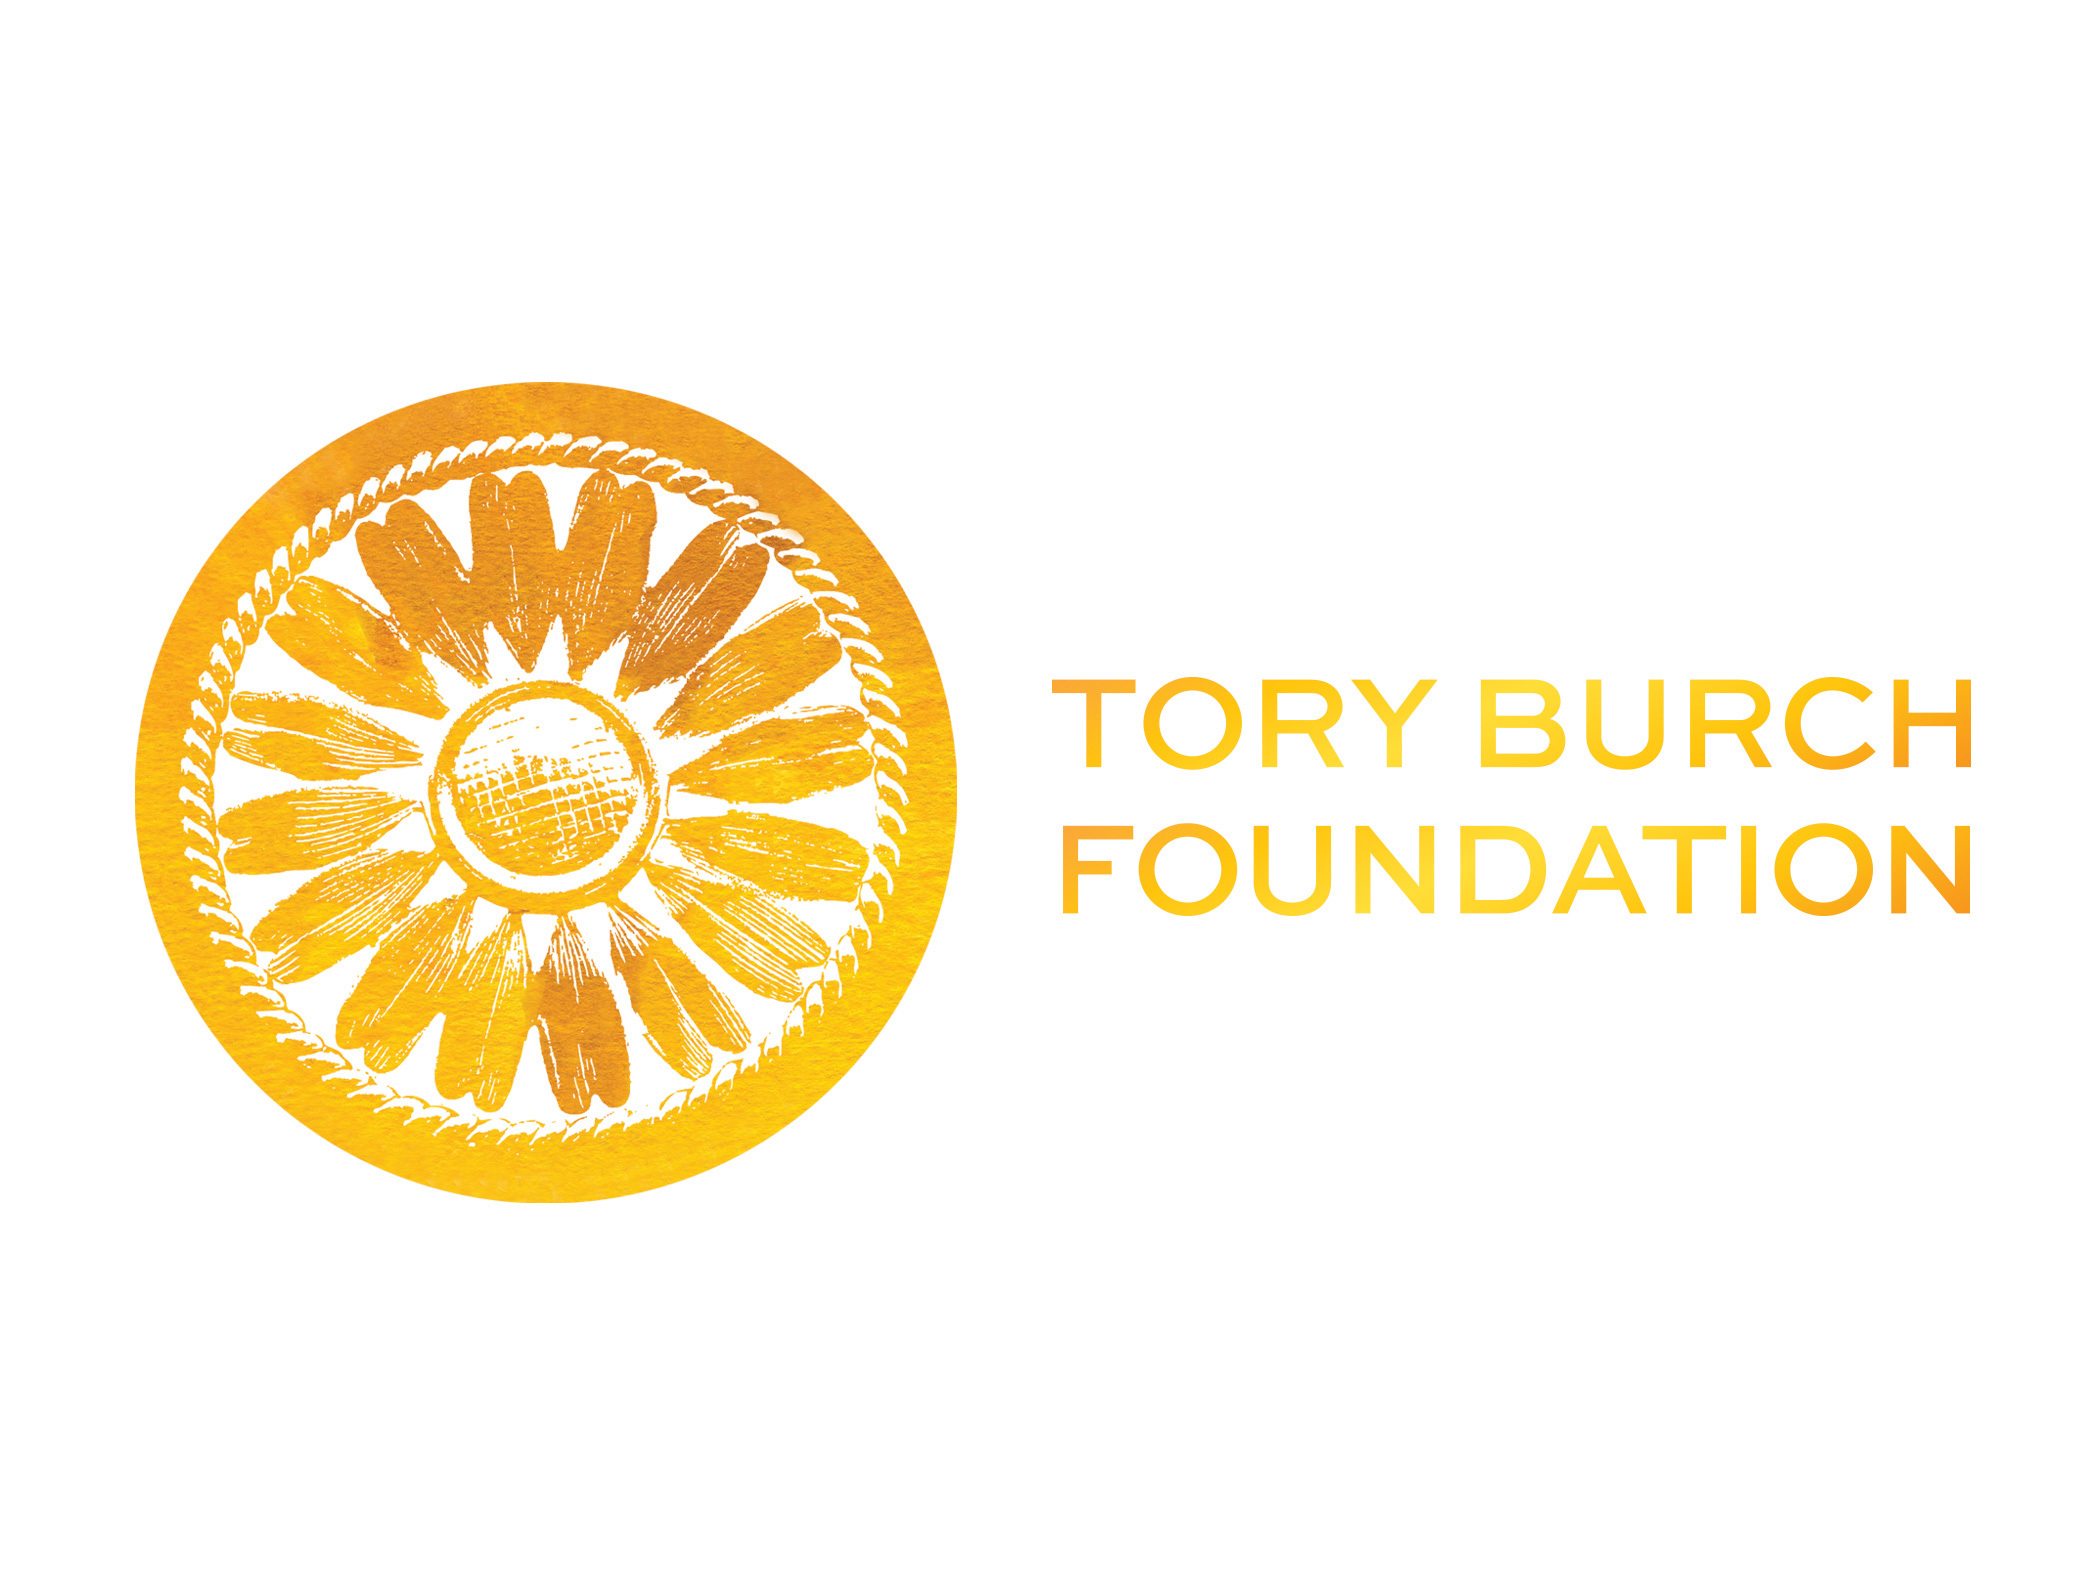 d54562086907 Tory Burch Foundation and Bank of America Expand Elizabeth Street Capital  Initiative